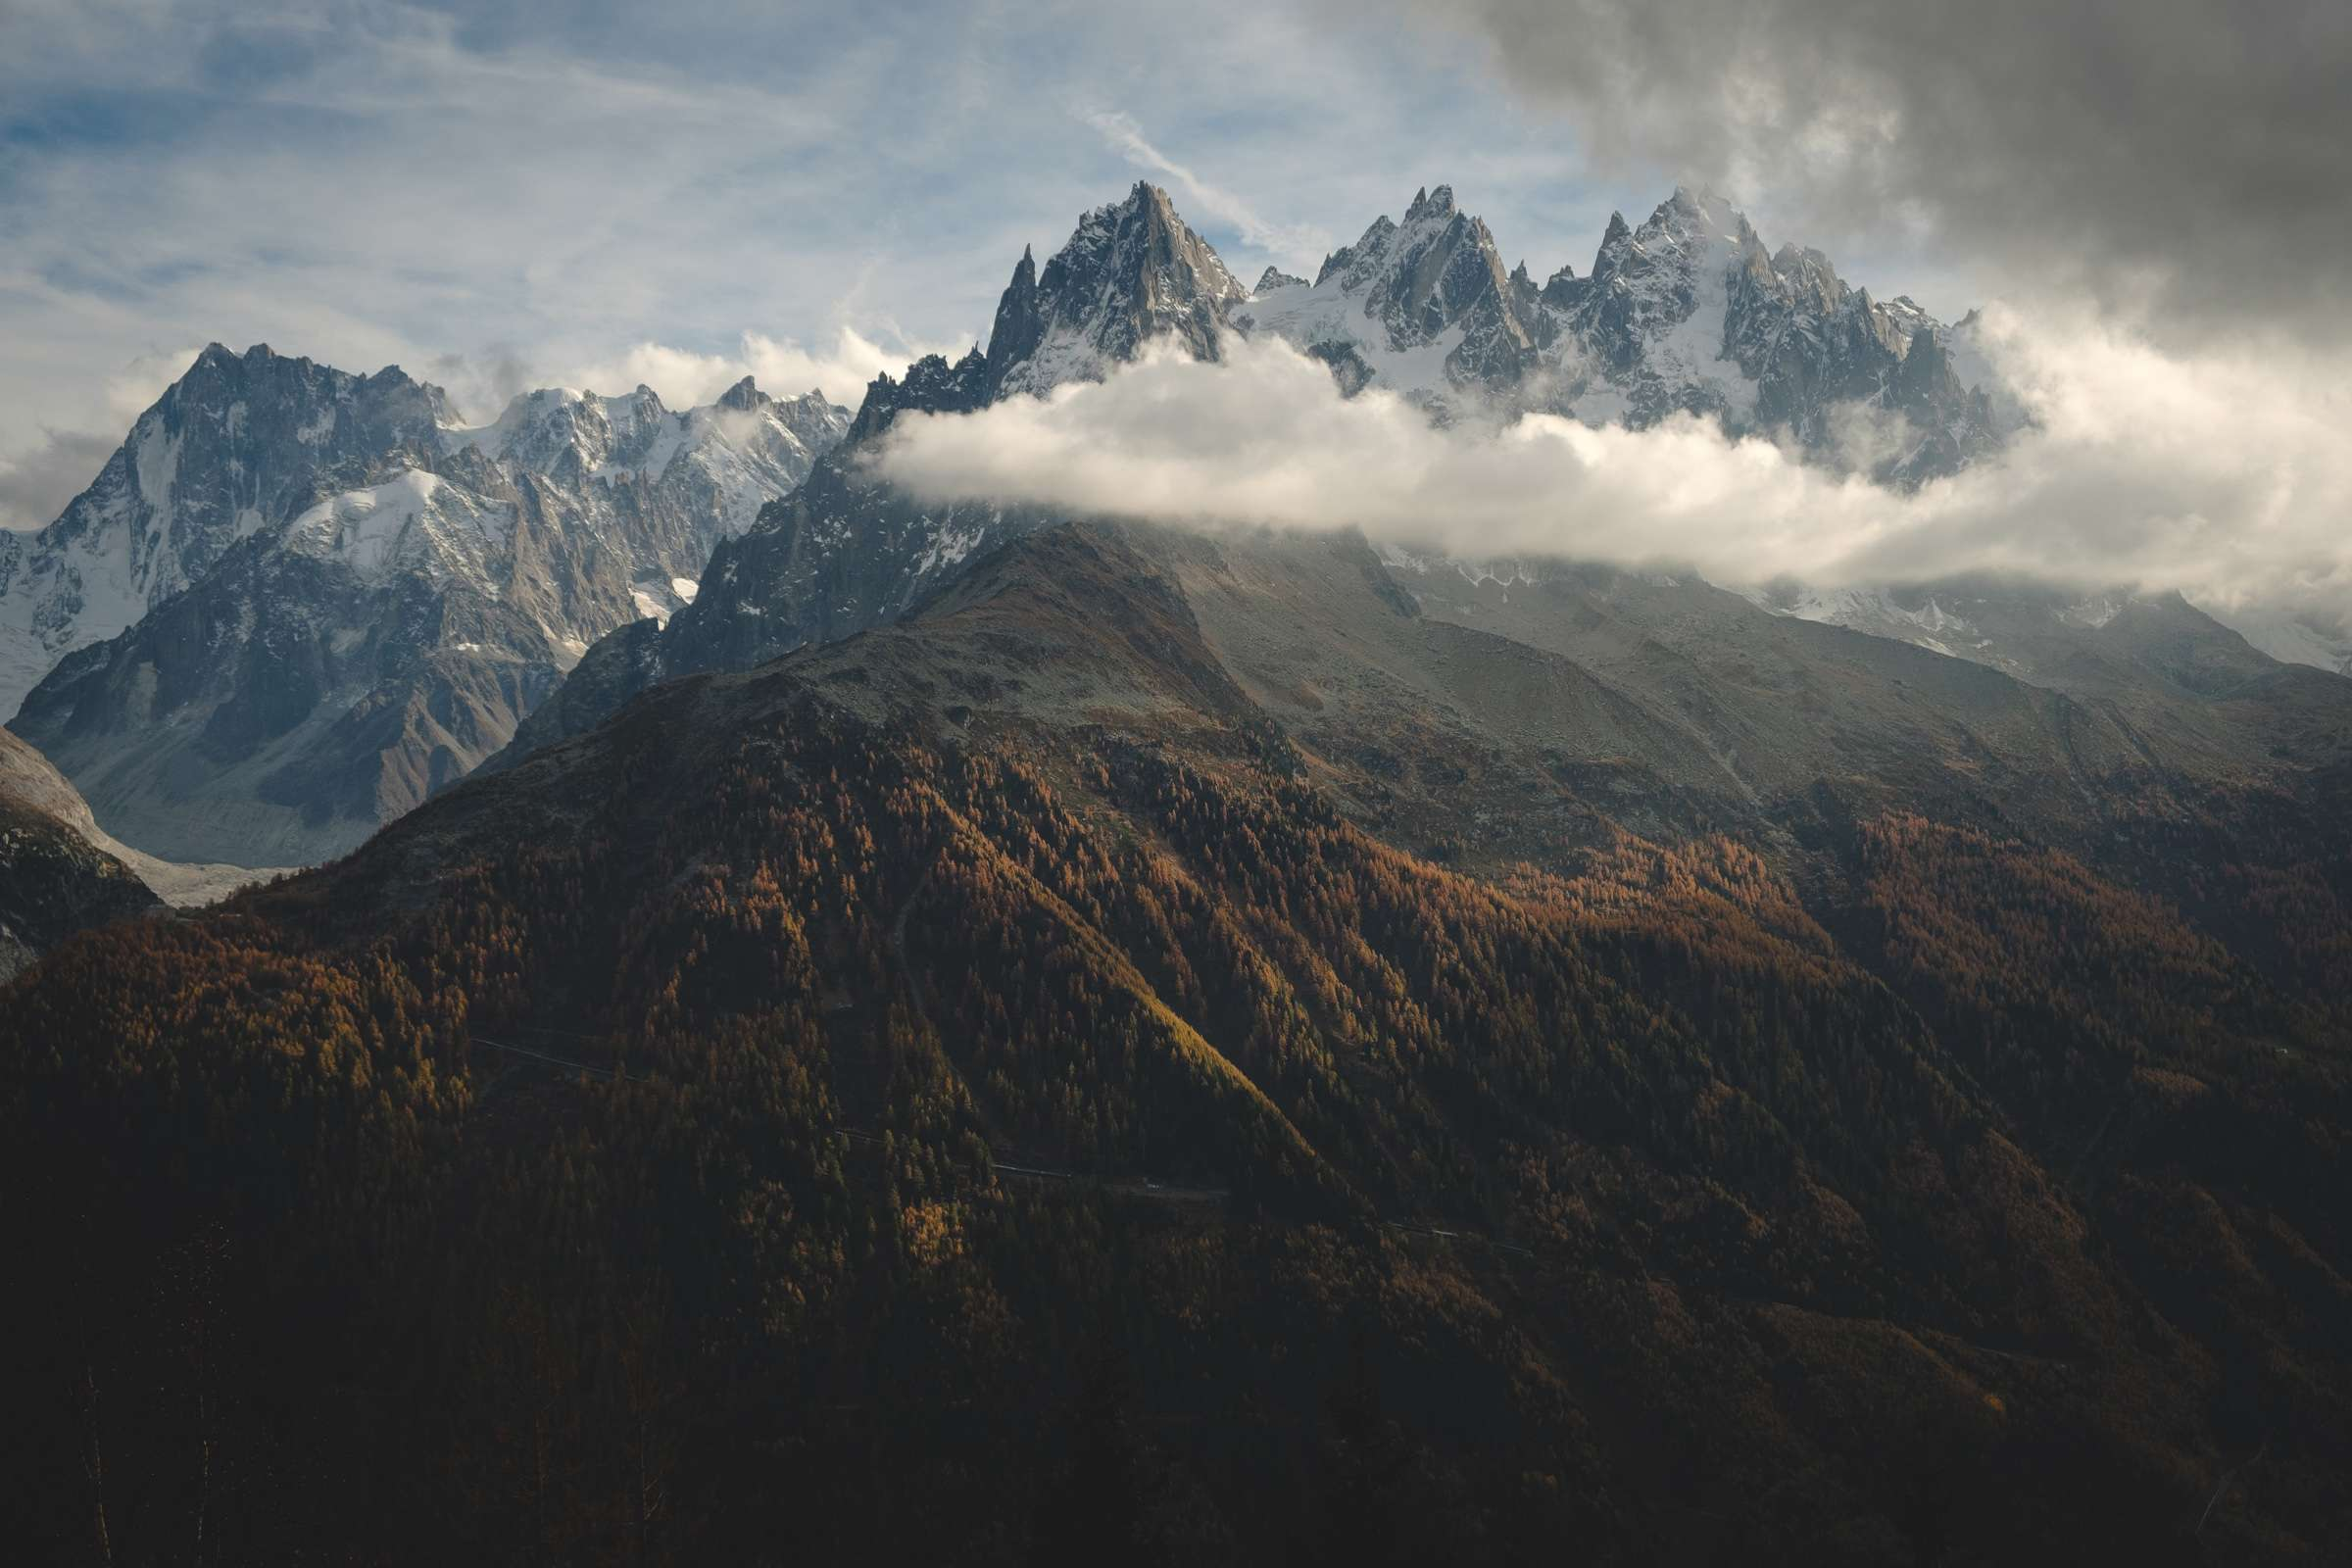 Mont Blanc illuminated by the afternoon light